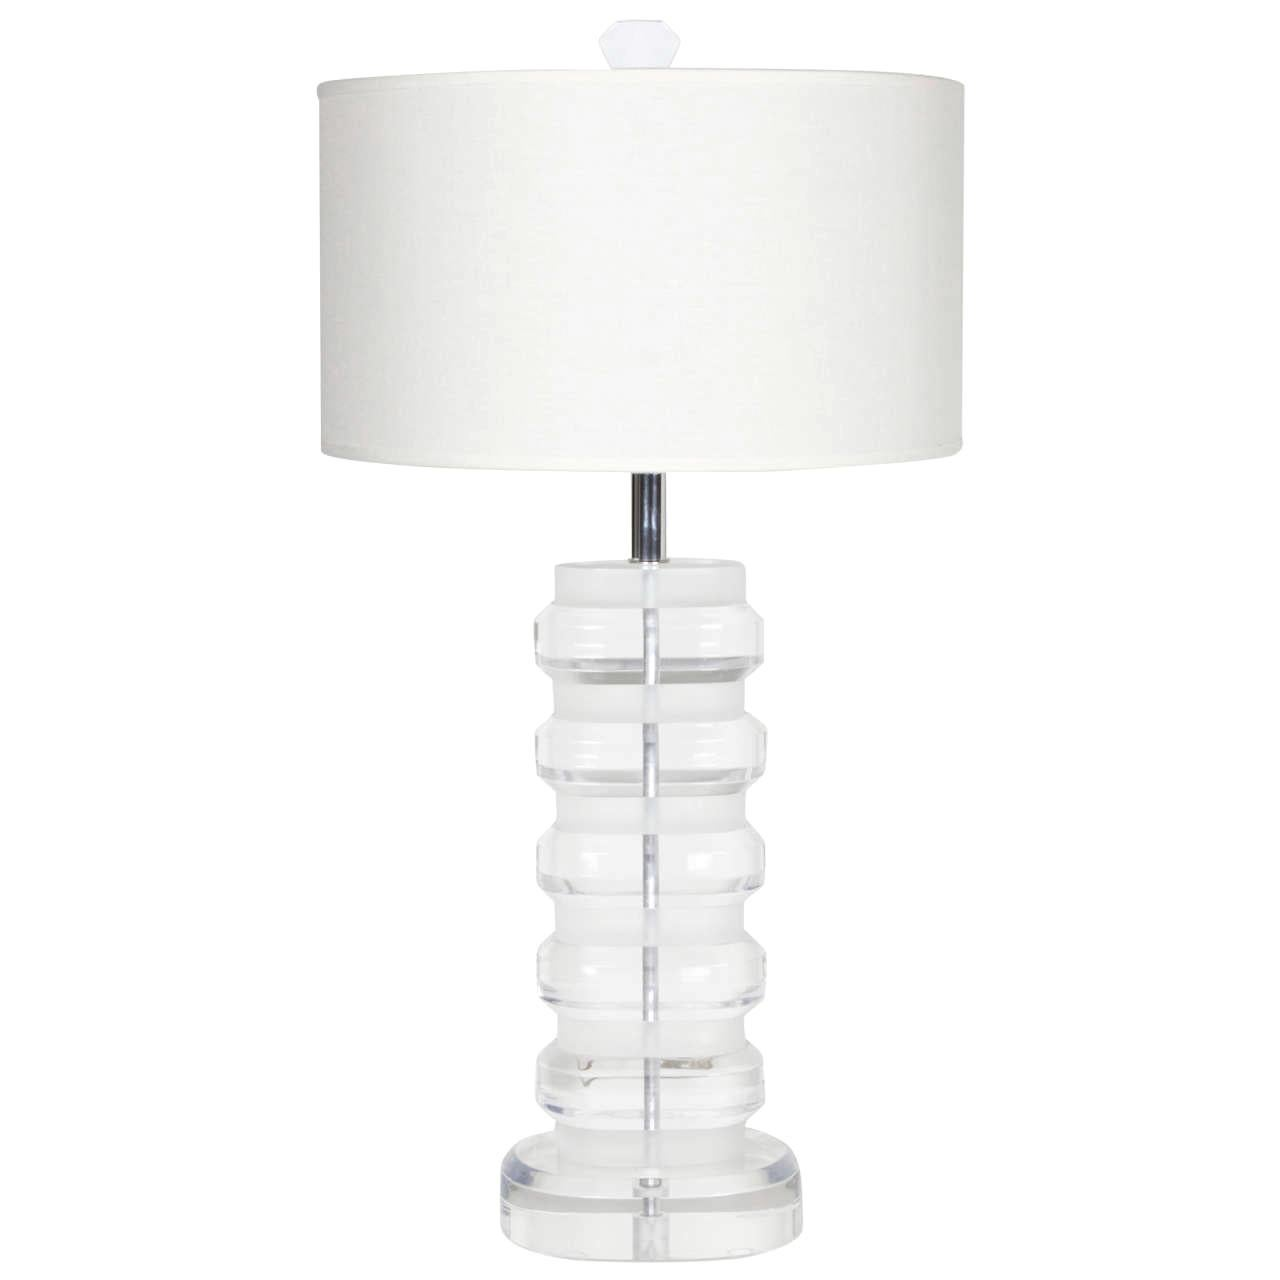 1970s Solid Lucite Table Lamp in the Style of Karl Springer